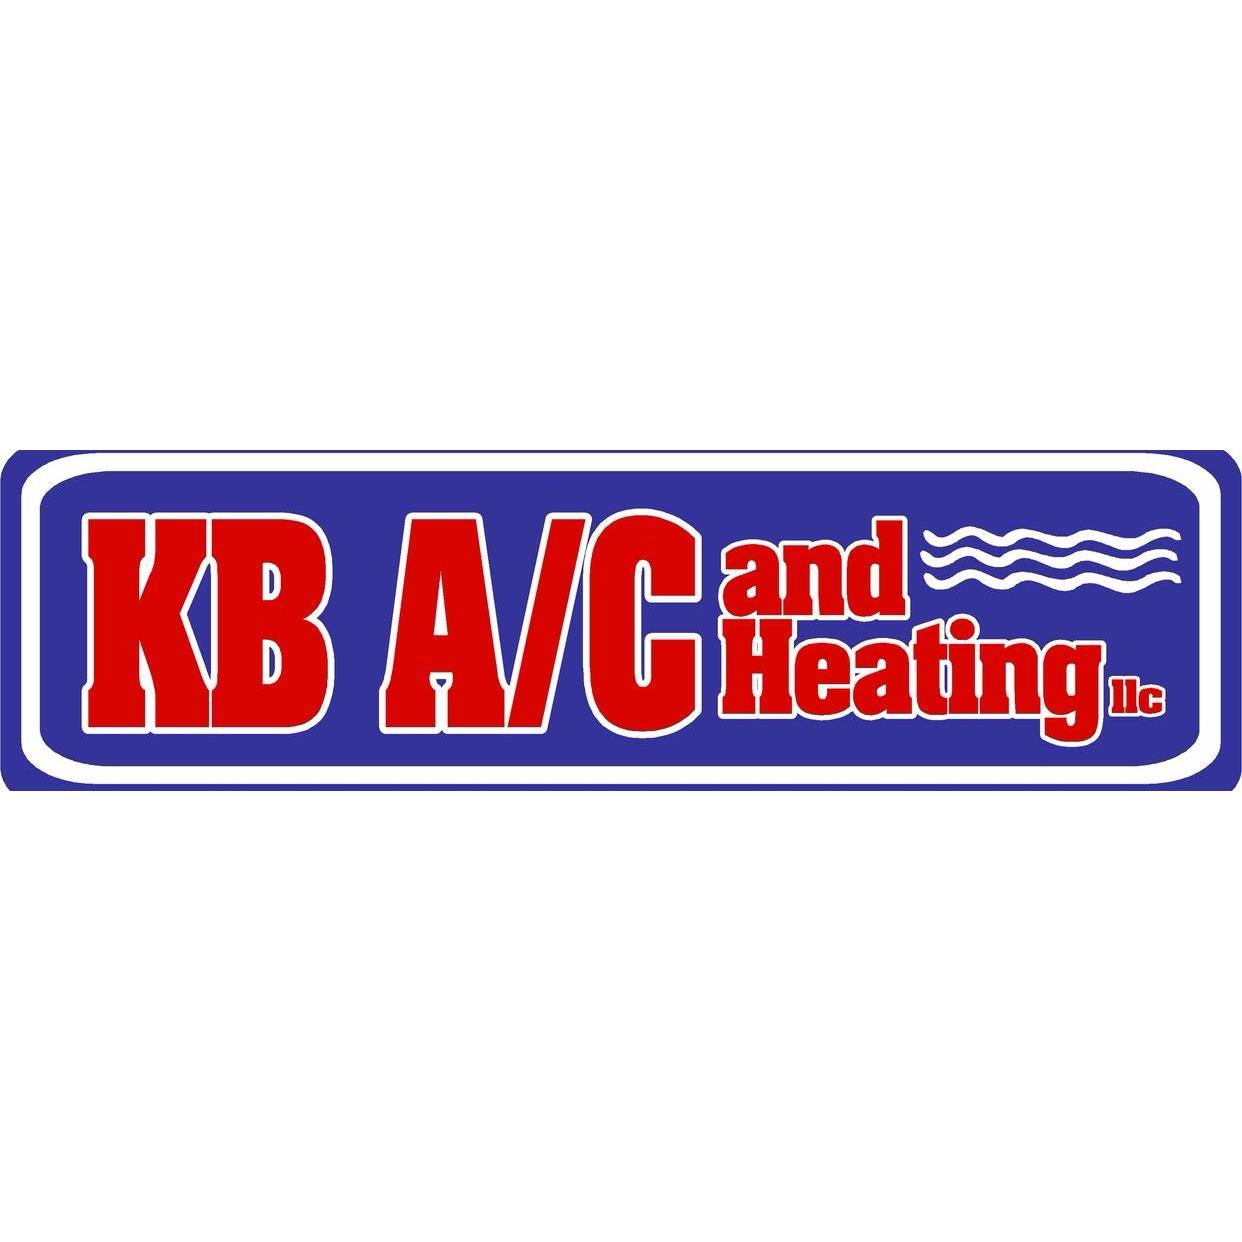 KB A/C and Heating, LLC